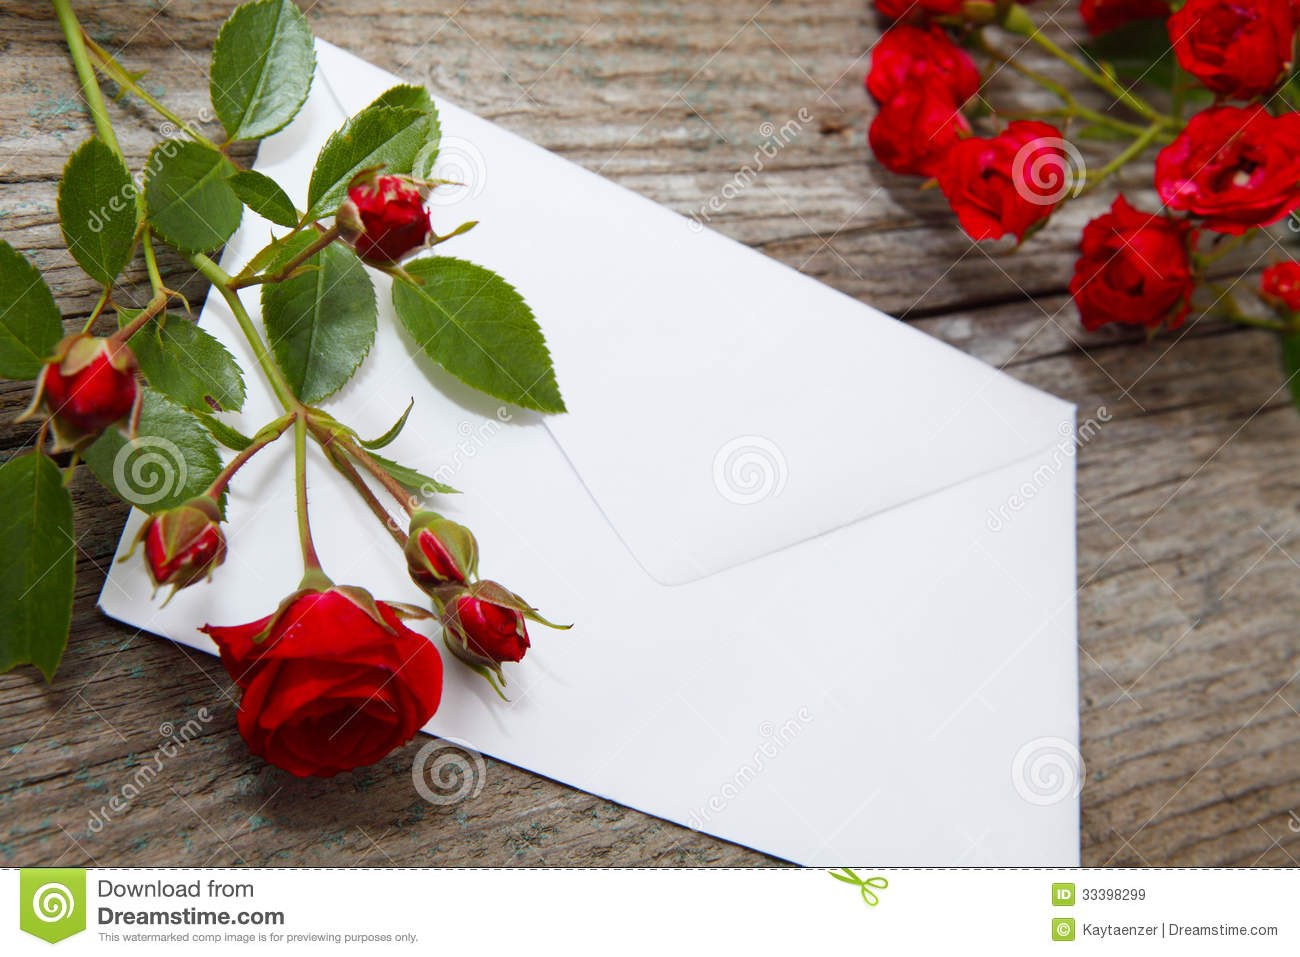 Rose Greetings Love Letter Stock Image Image Of Decorative Gift